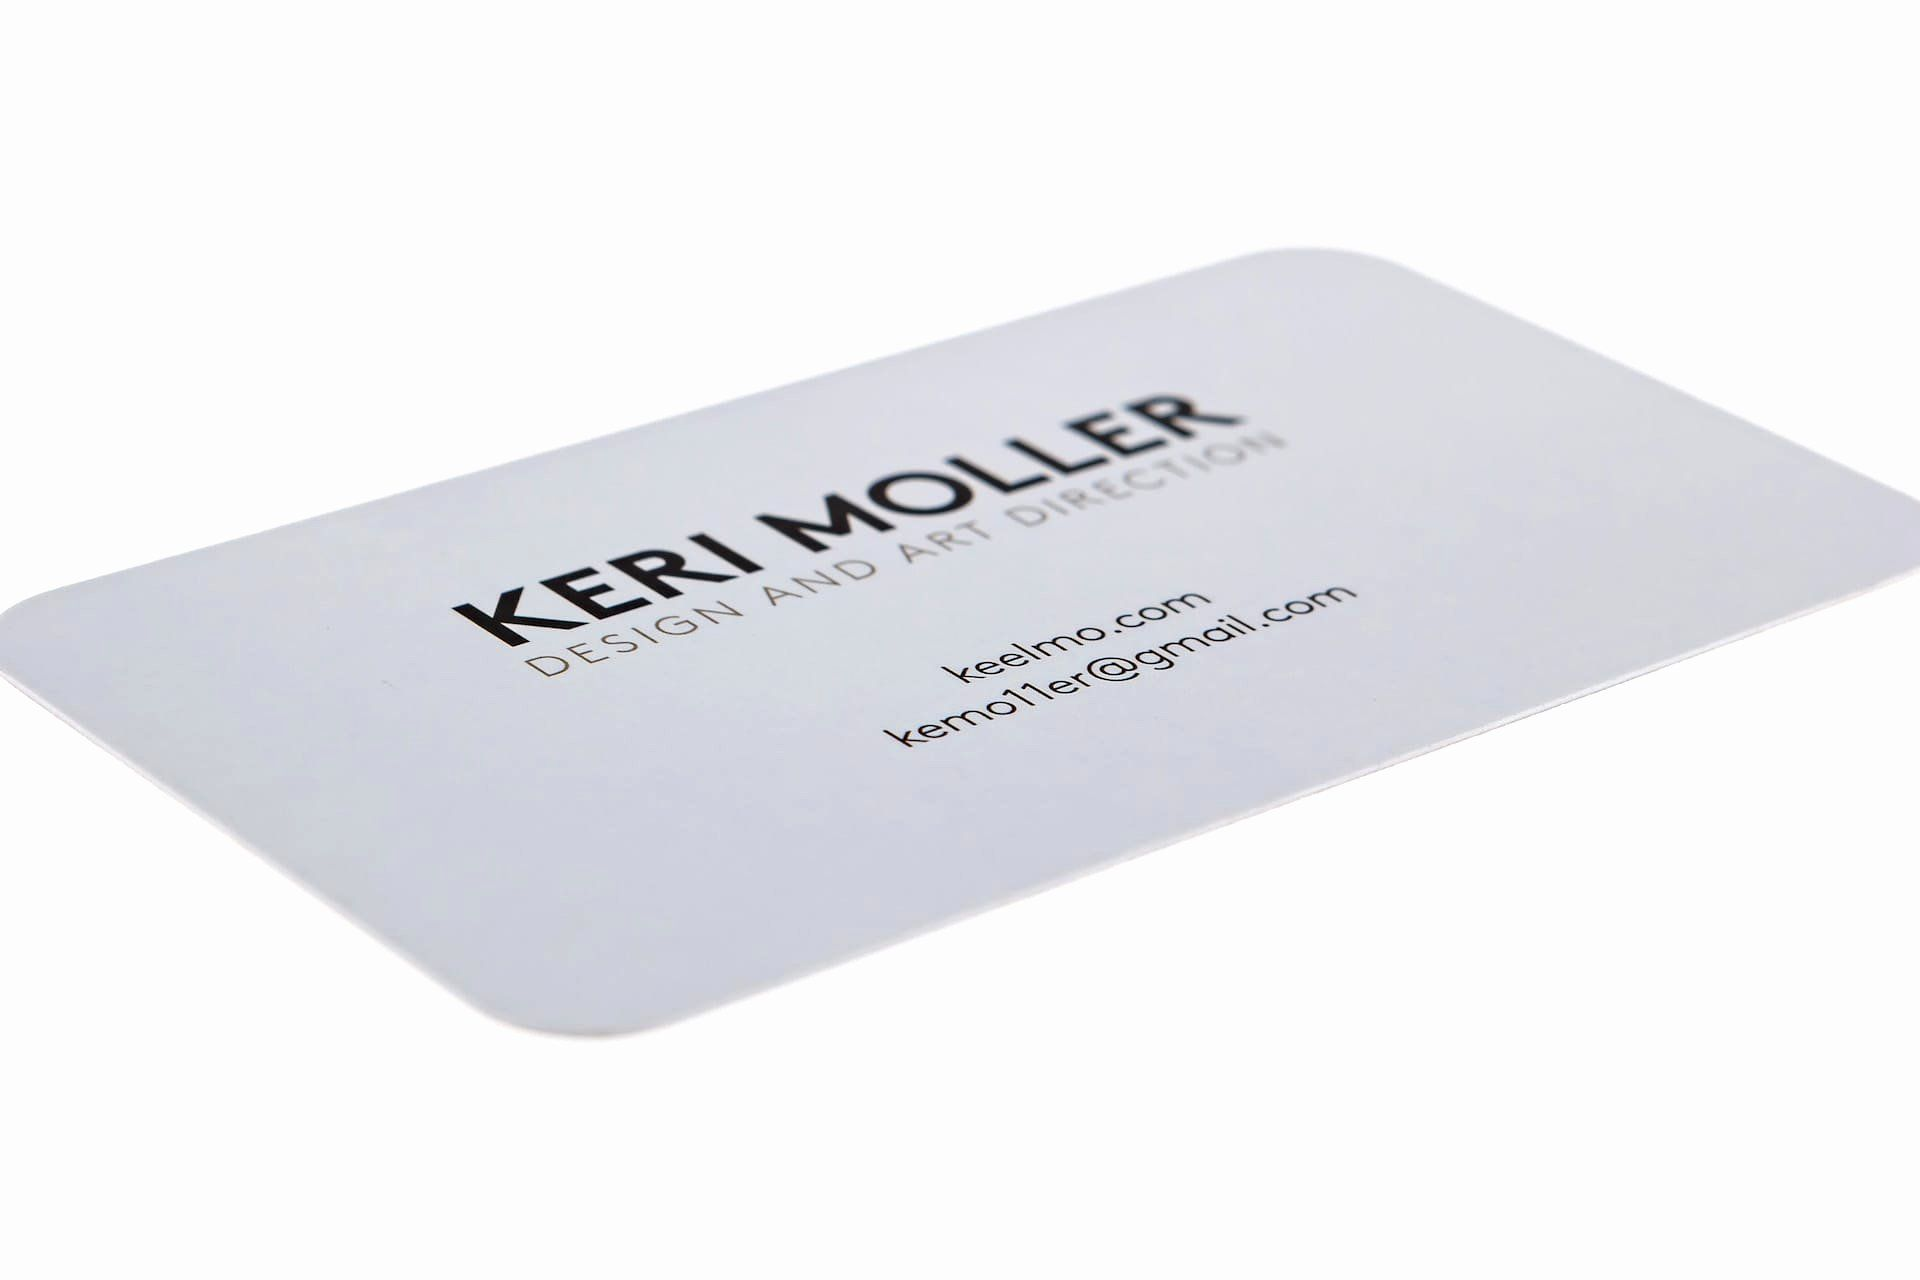 Business Card Rounded Corners Template In 2020 Round Business Cards Card Template Templates